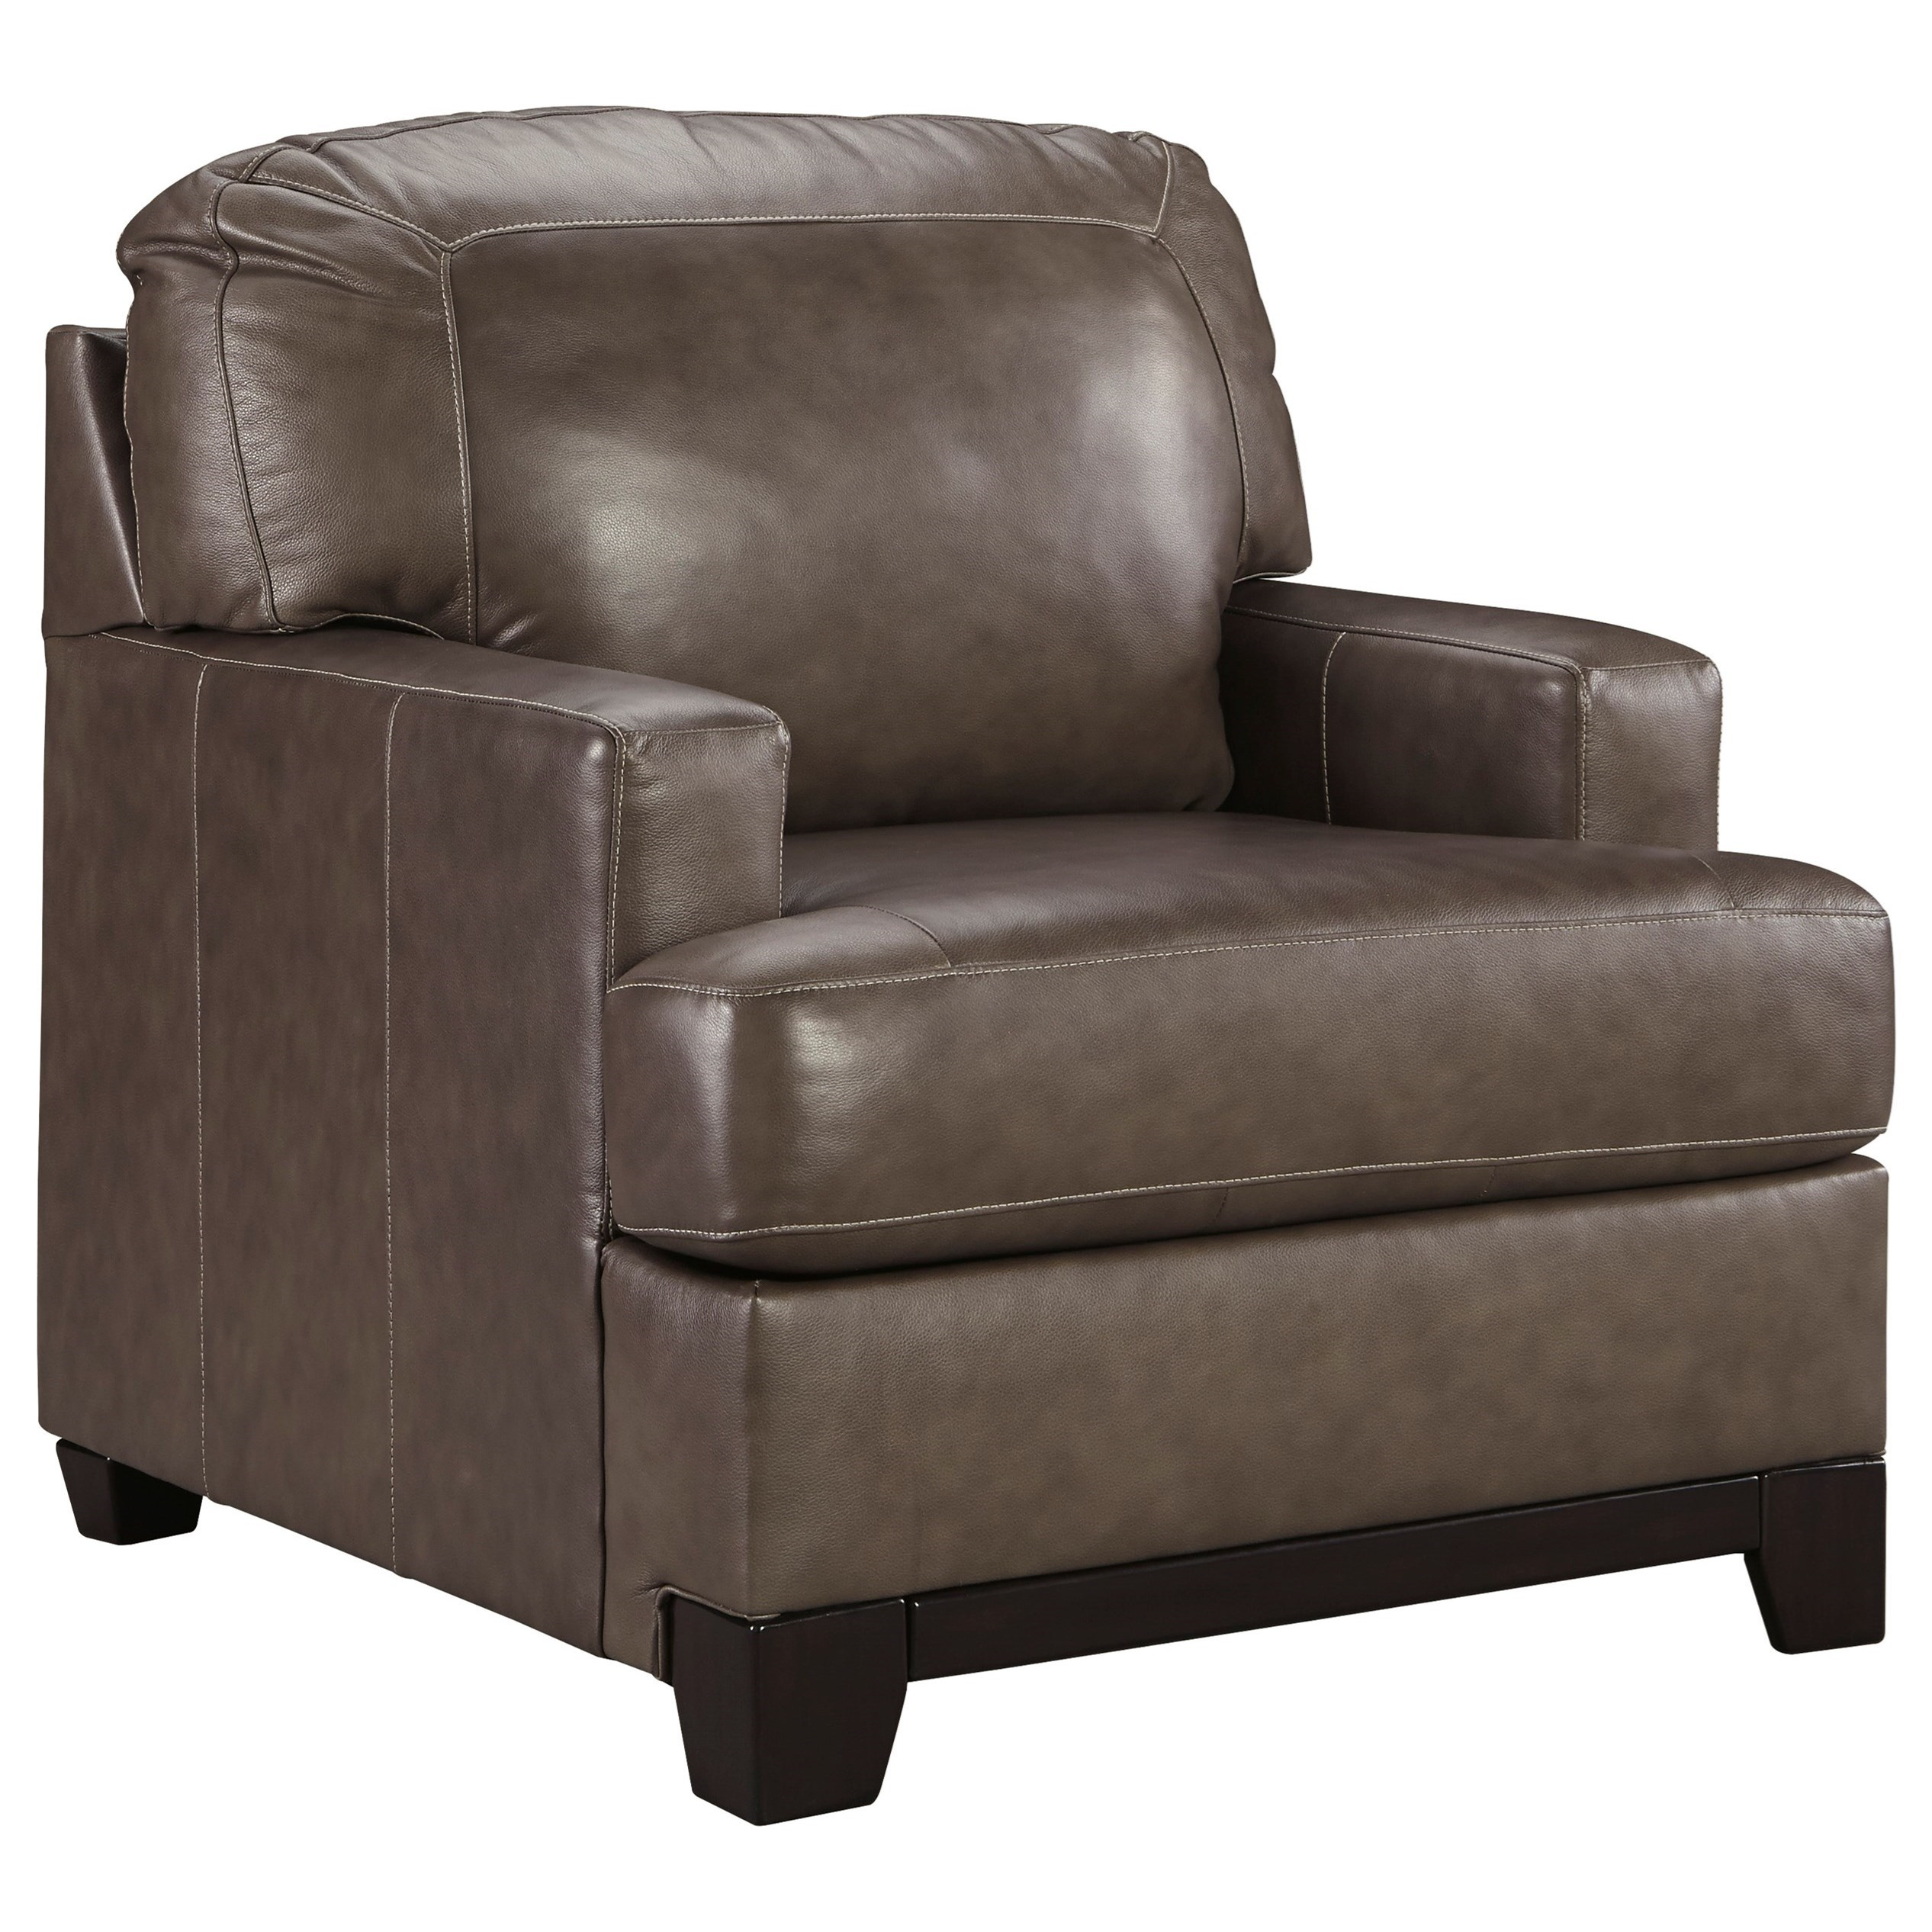 Ashley Furniture Leather Chair Signature Design By Ashley Derwood 8800320 Contemporary